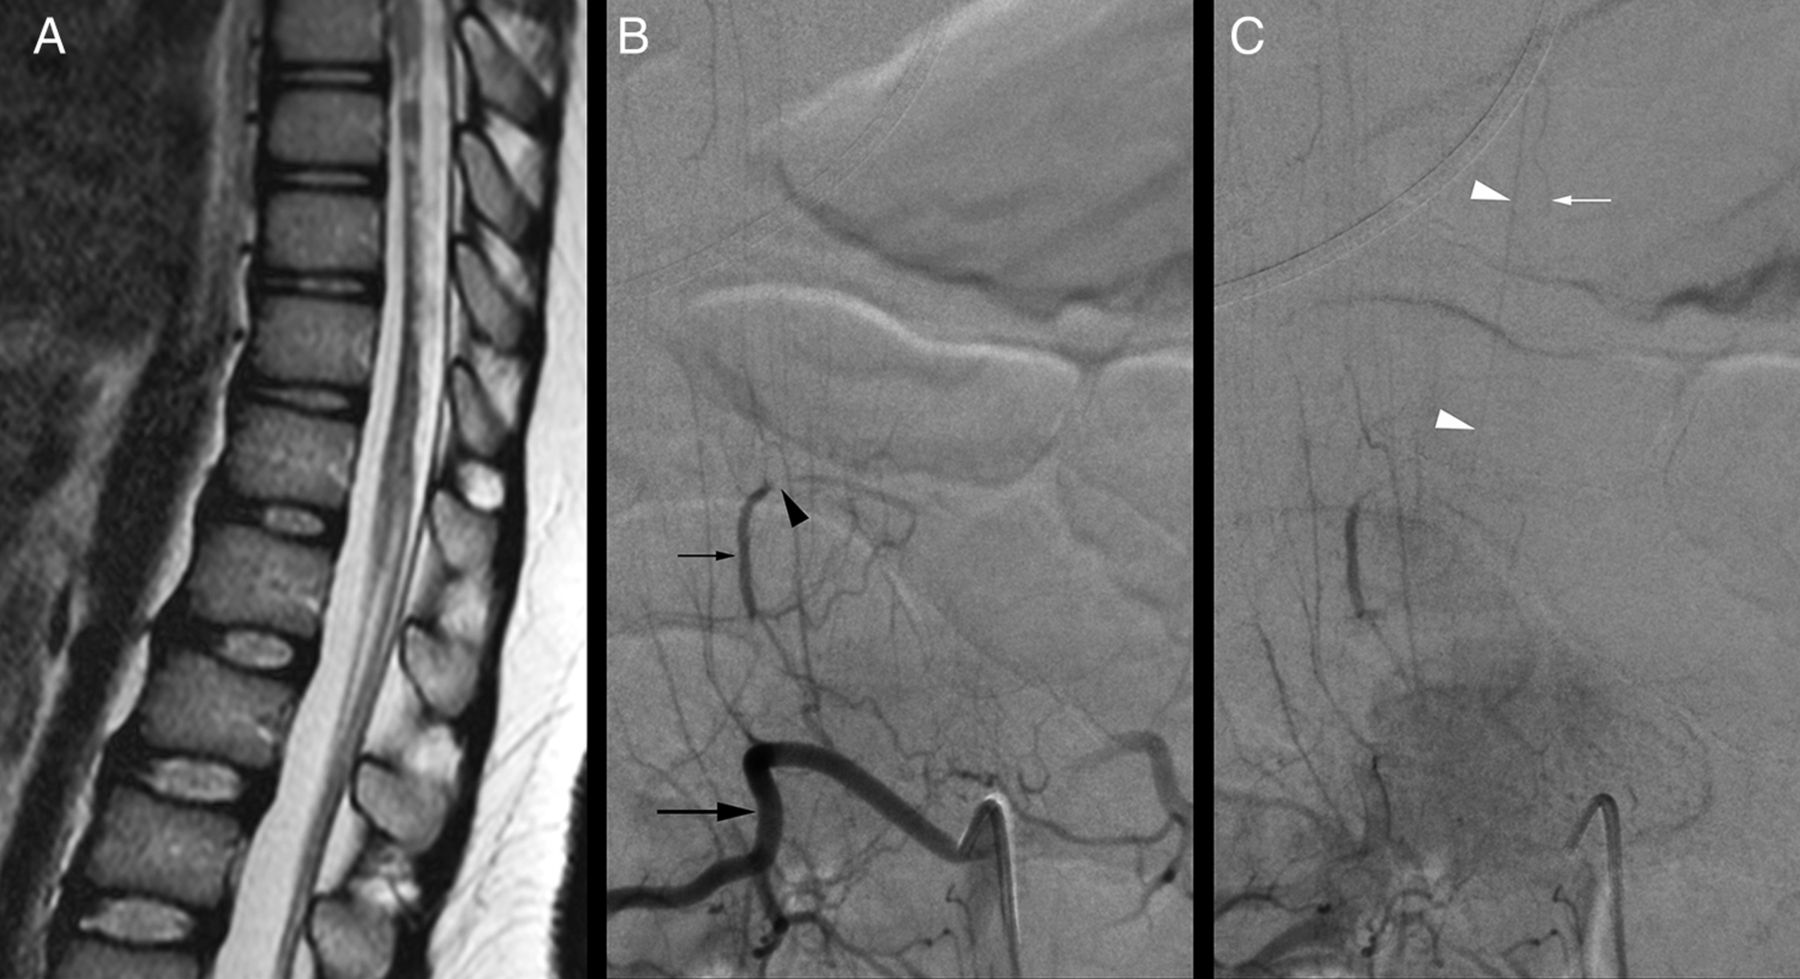 Periconal Arterial Anastomotic Circle And Posterior Lumbosacral Watershed Zone Of The Spinal